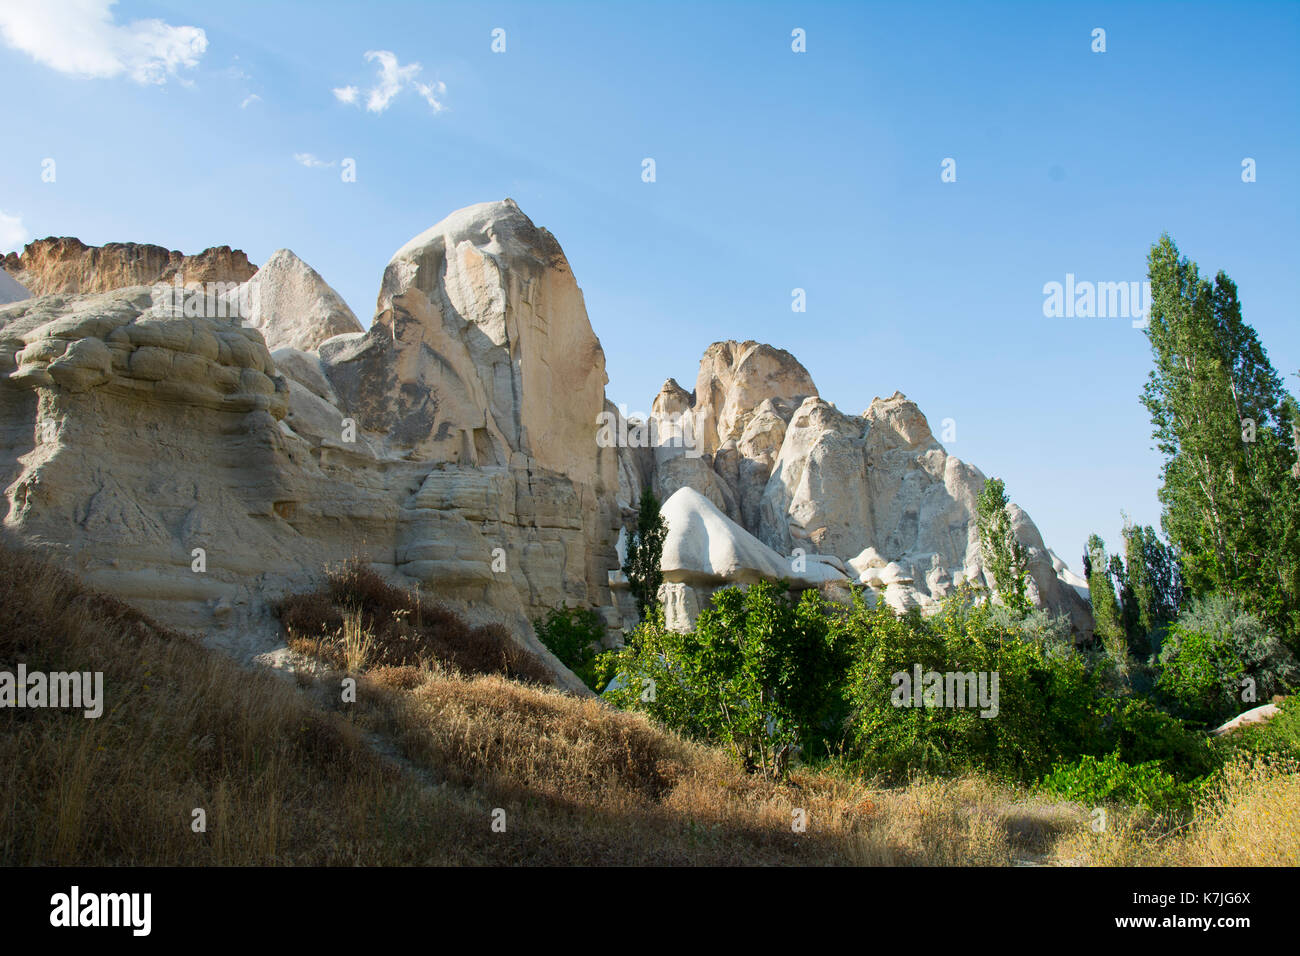 Sandrock chimeny and trees in Capadocia national reserve in central Turkey. Patrimony of the Humanity (UNESCO) from 1985 - Stock Image